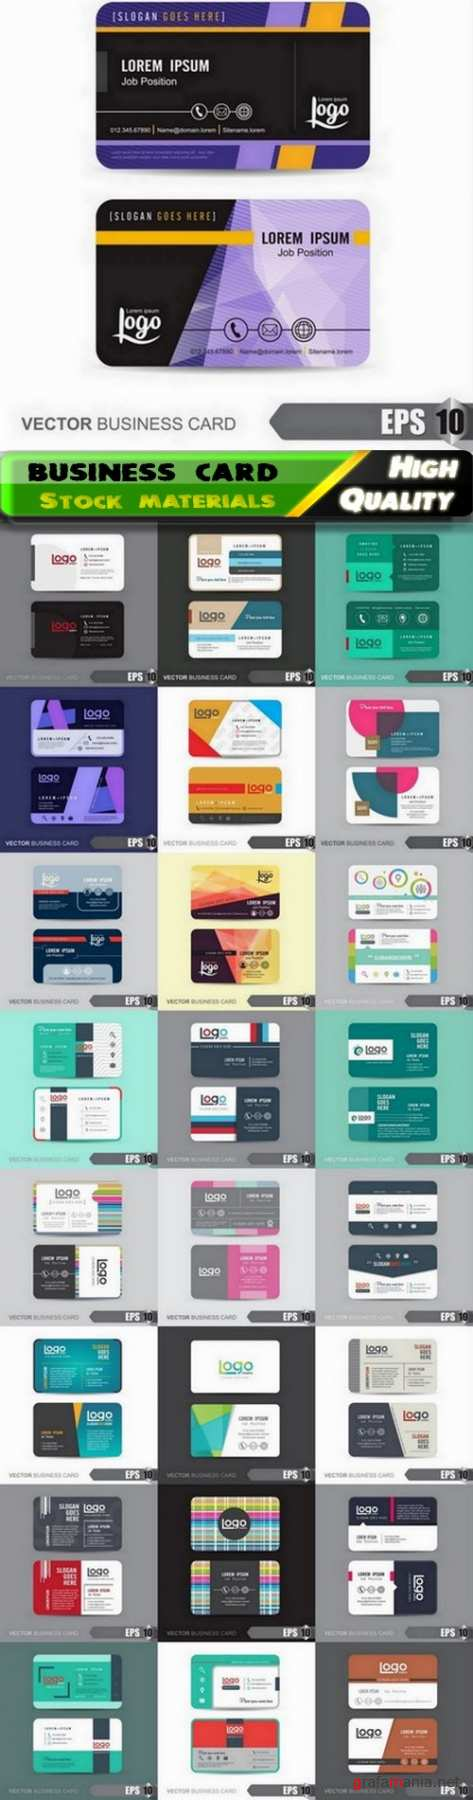 Simple business card and corporate template design - 25 Eps